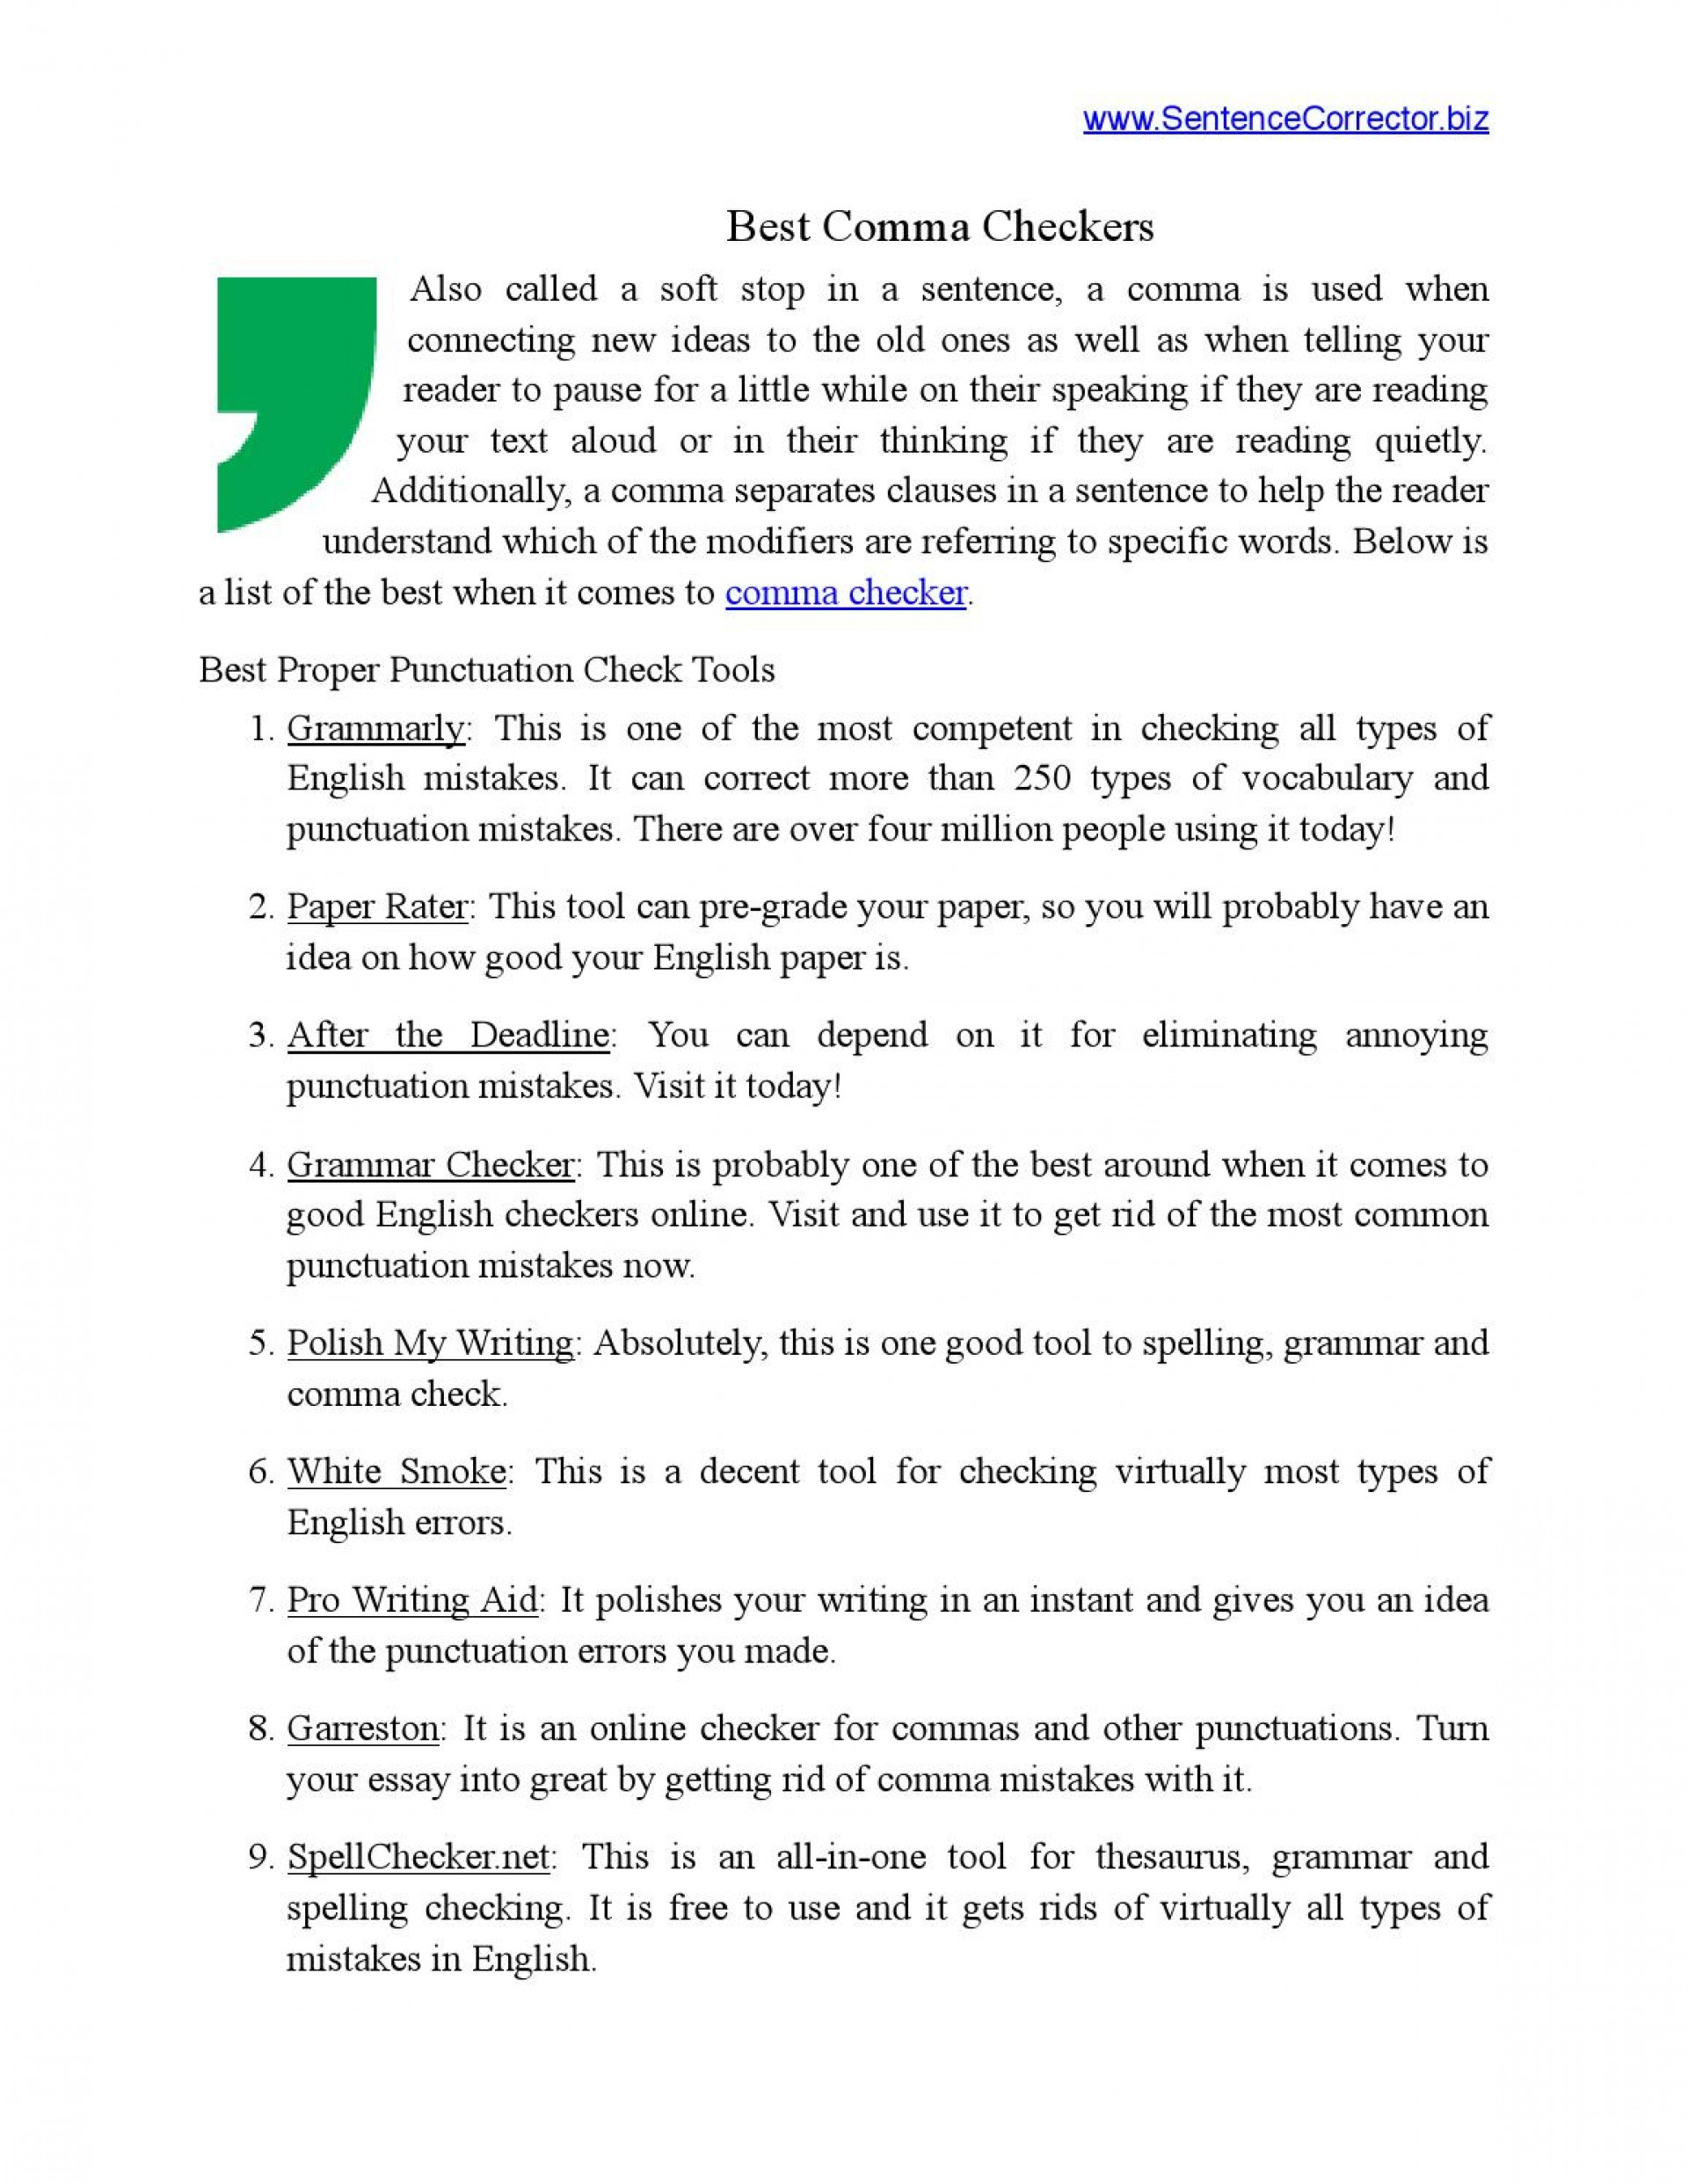 004 Page 1 Free Essay Checker Awesome Ielts Punctuation For Plagiarism 1920